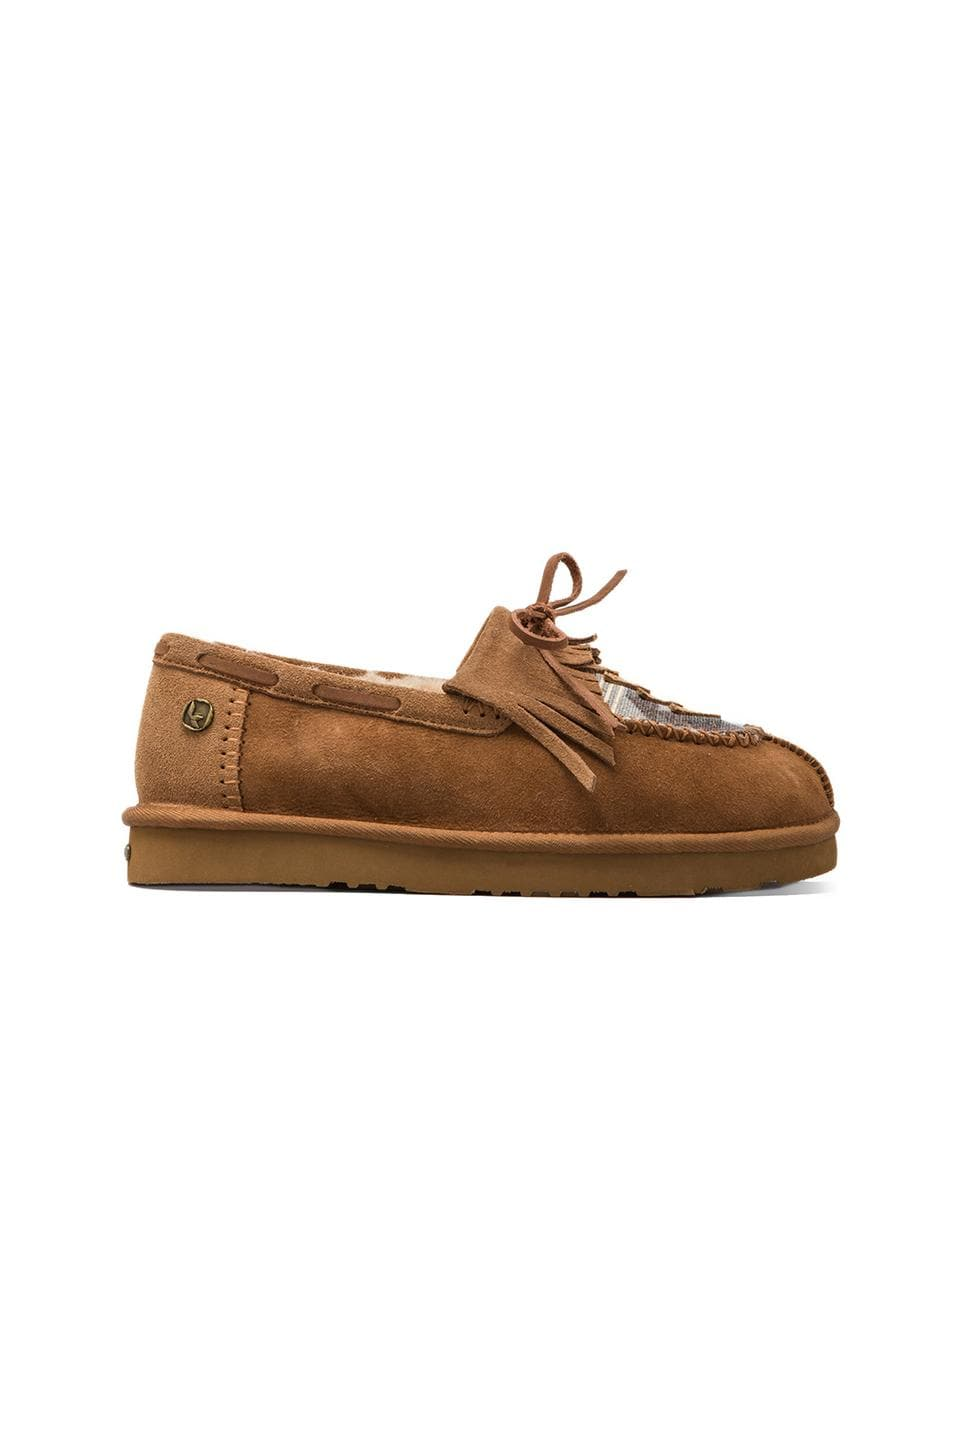 Koolaburra Apatchee Slipper with Twinface Sheepskin in Chestnut/Deco Canvas